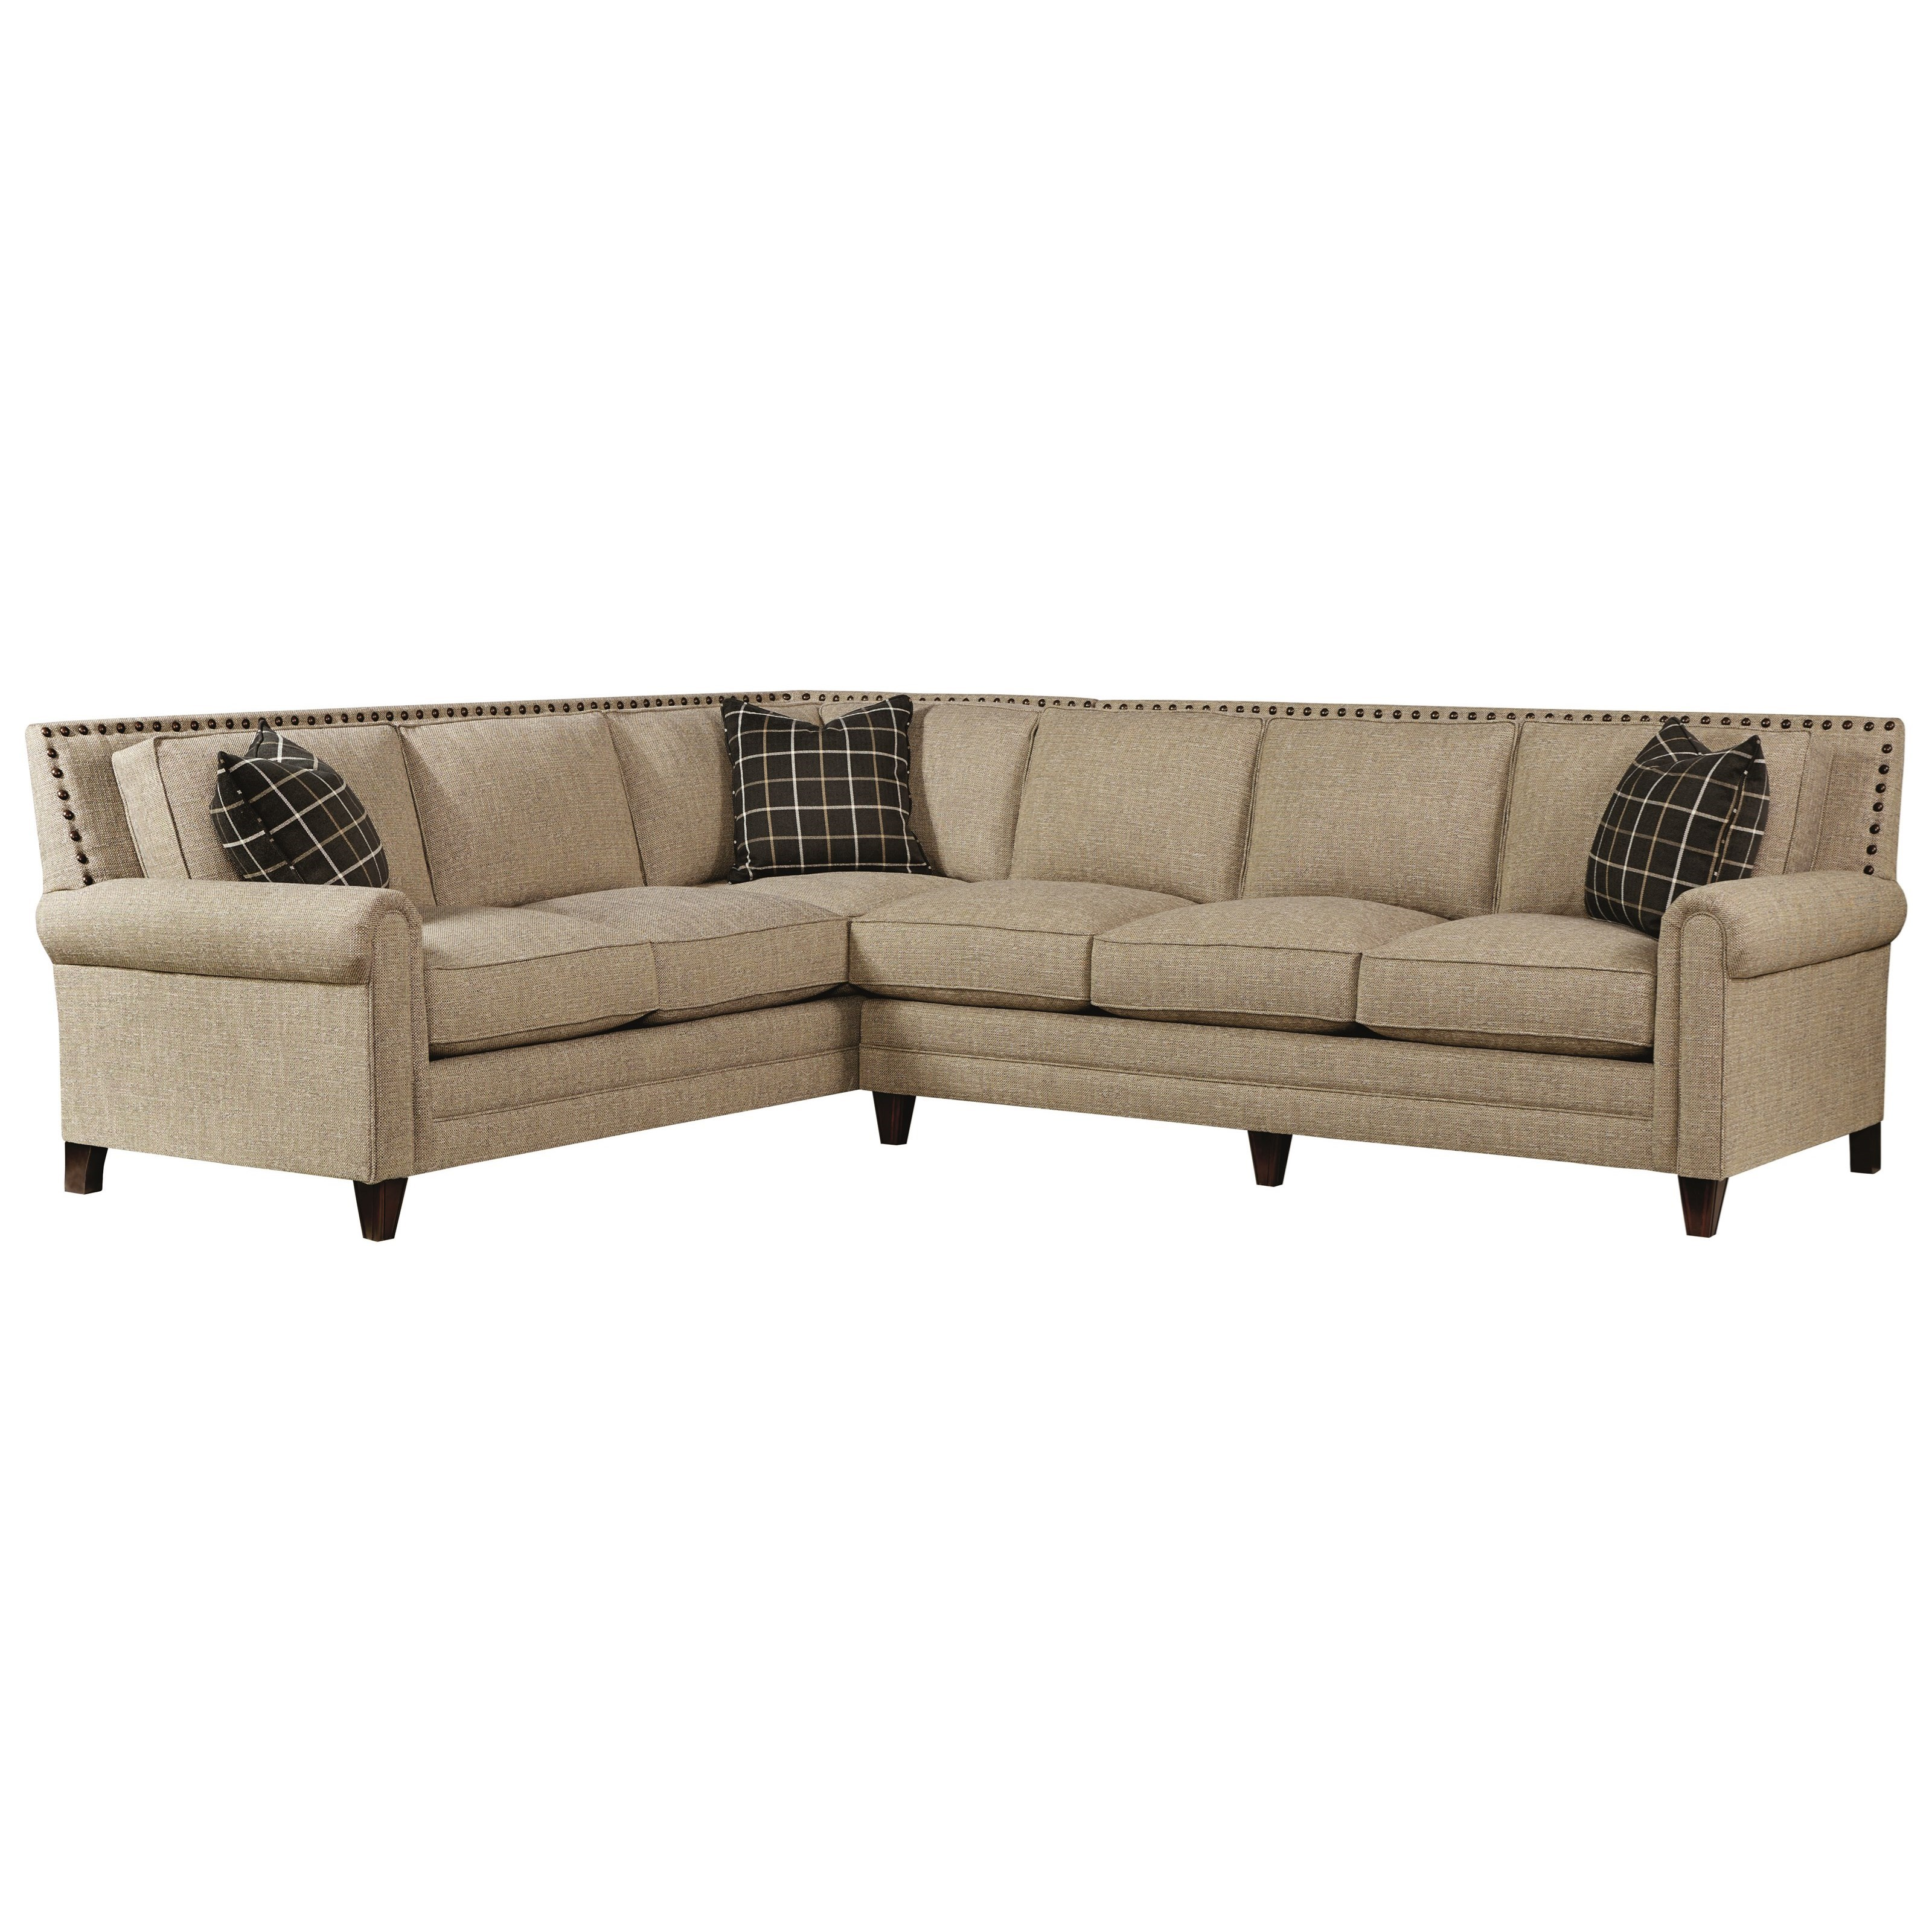 Bassett Harlan Sectional Sofa with 5 Seats - Item Number 2618-66FC+61FC  sc 1 st  Dunk u0026 Bright Furniture : bassett sectional - Sectionals, Sofas & Couches